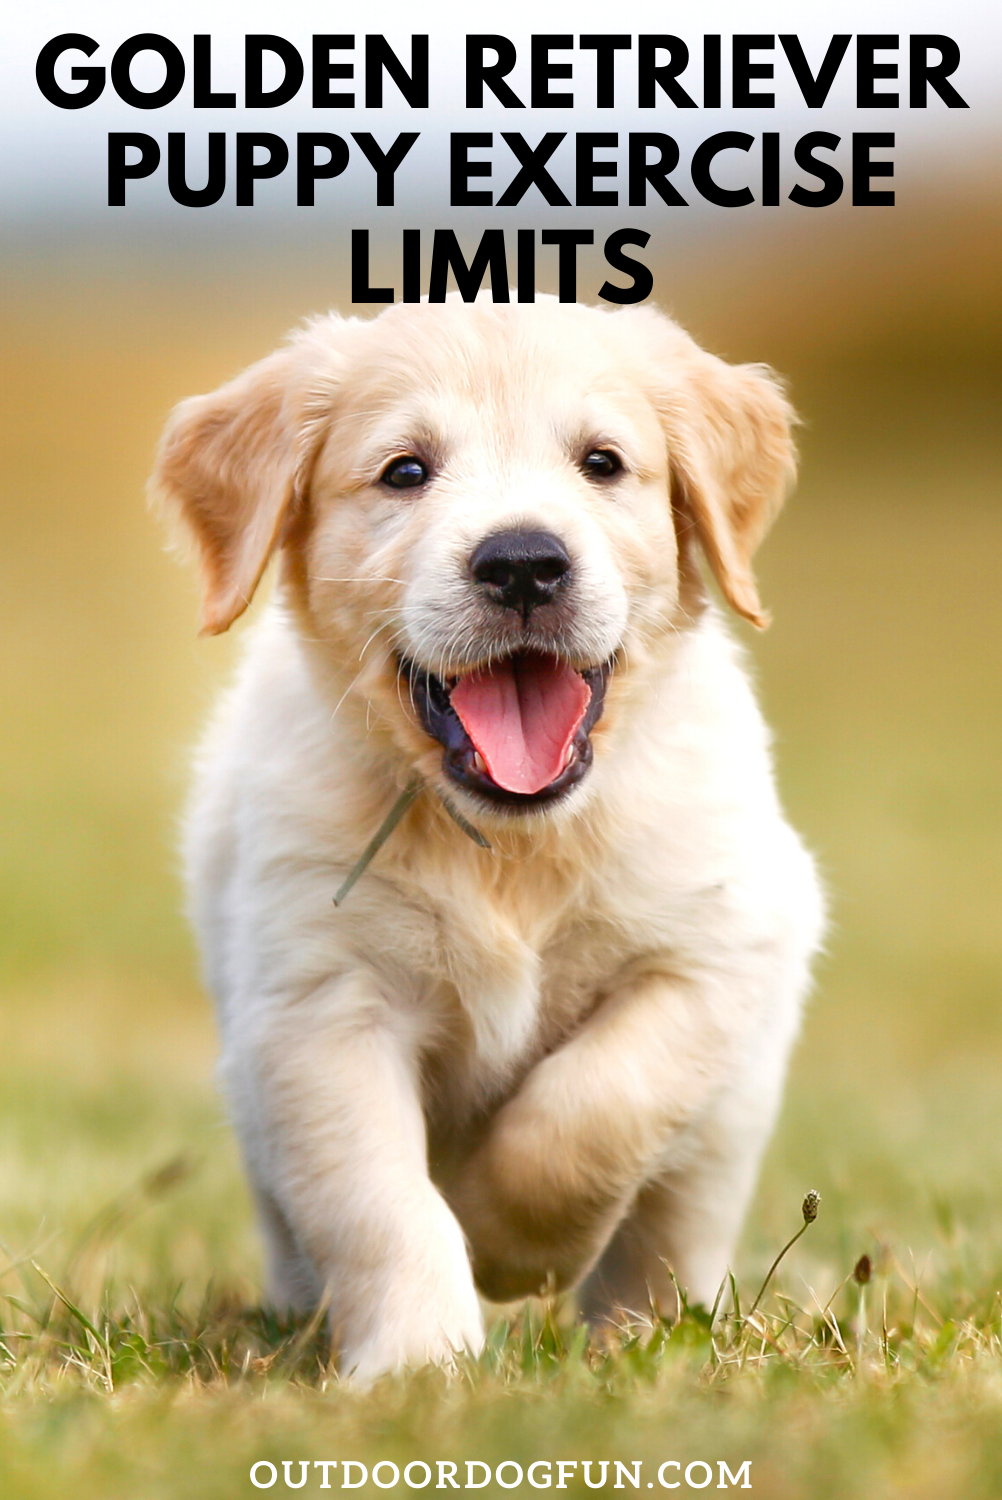 Golden Retriever Puppy Exercise Limits You Need To Know In 2020 Puppy Training Dog Training Puppy Training Classes